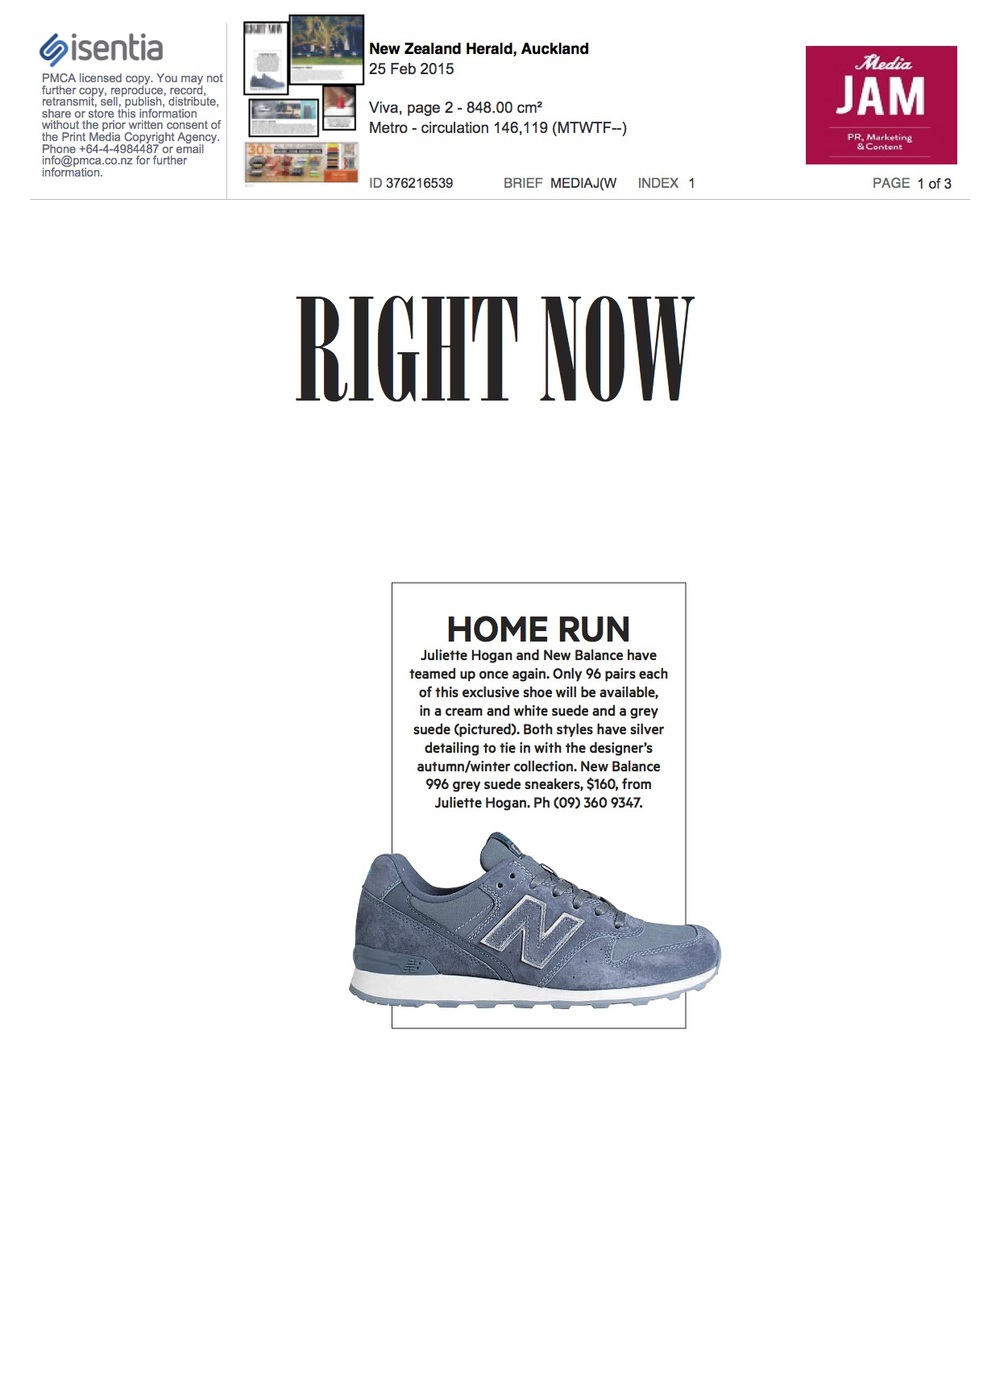 1New Balance feat Juliette Hogan Home Run NZ Herald VIVA 25 Feb 2015.jpg